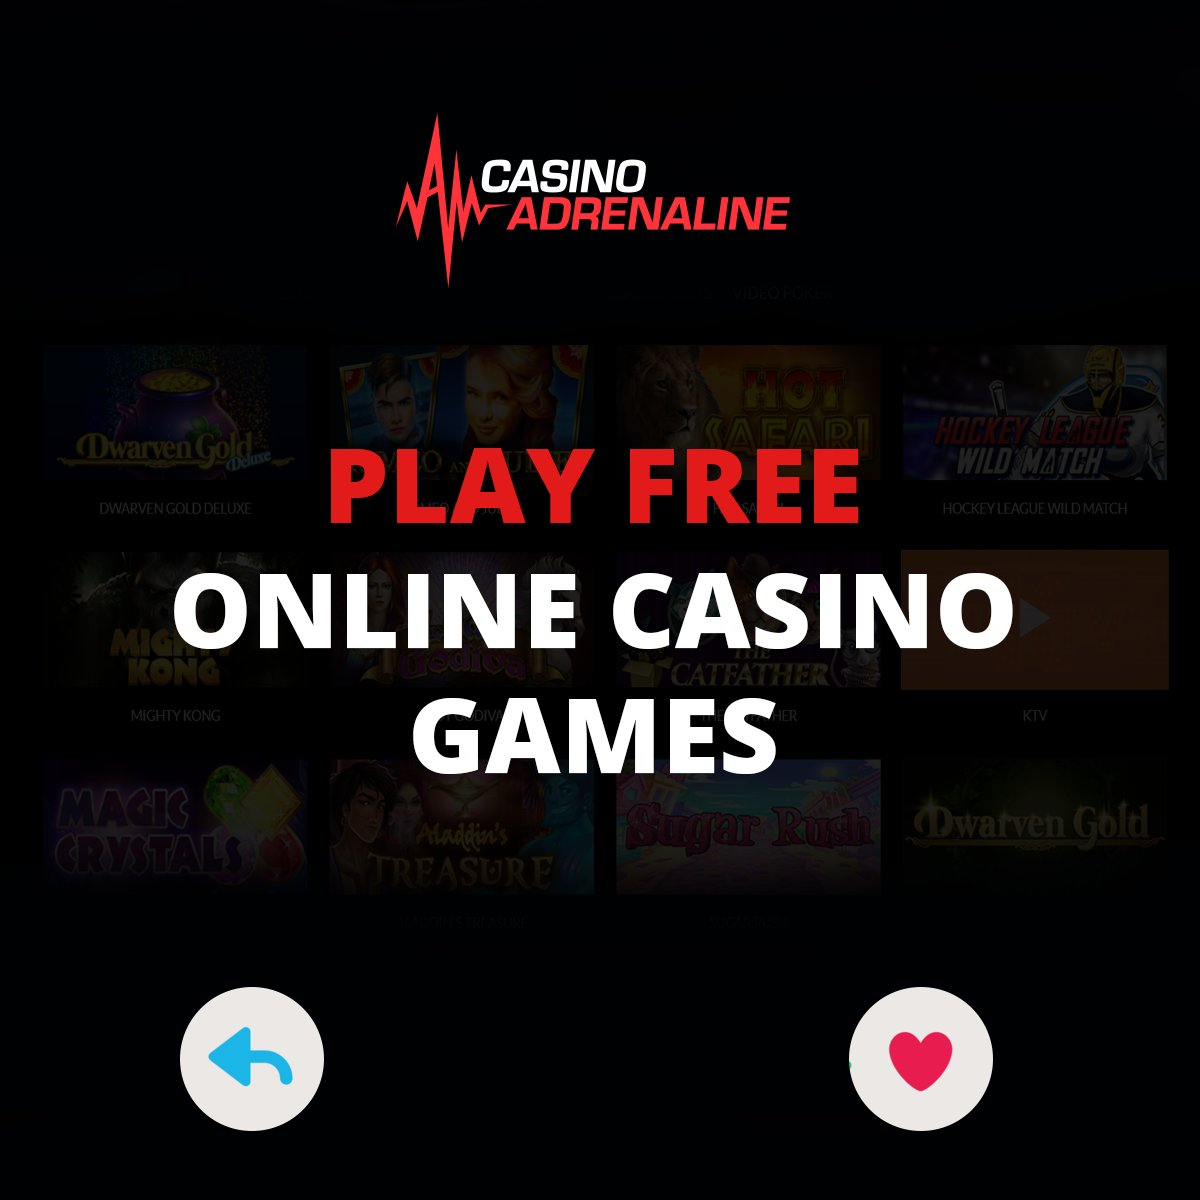 test Twitter Media - Online casino games are free and you can play it just for fun. Find out more: https://t.co/EJncOmiukd https://t.co/LwCmTWPcKF